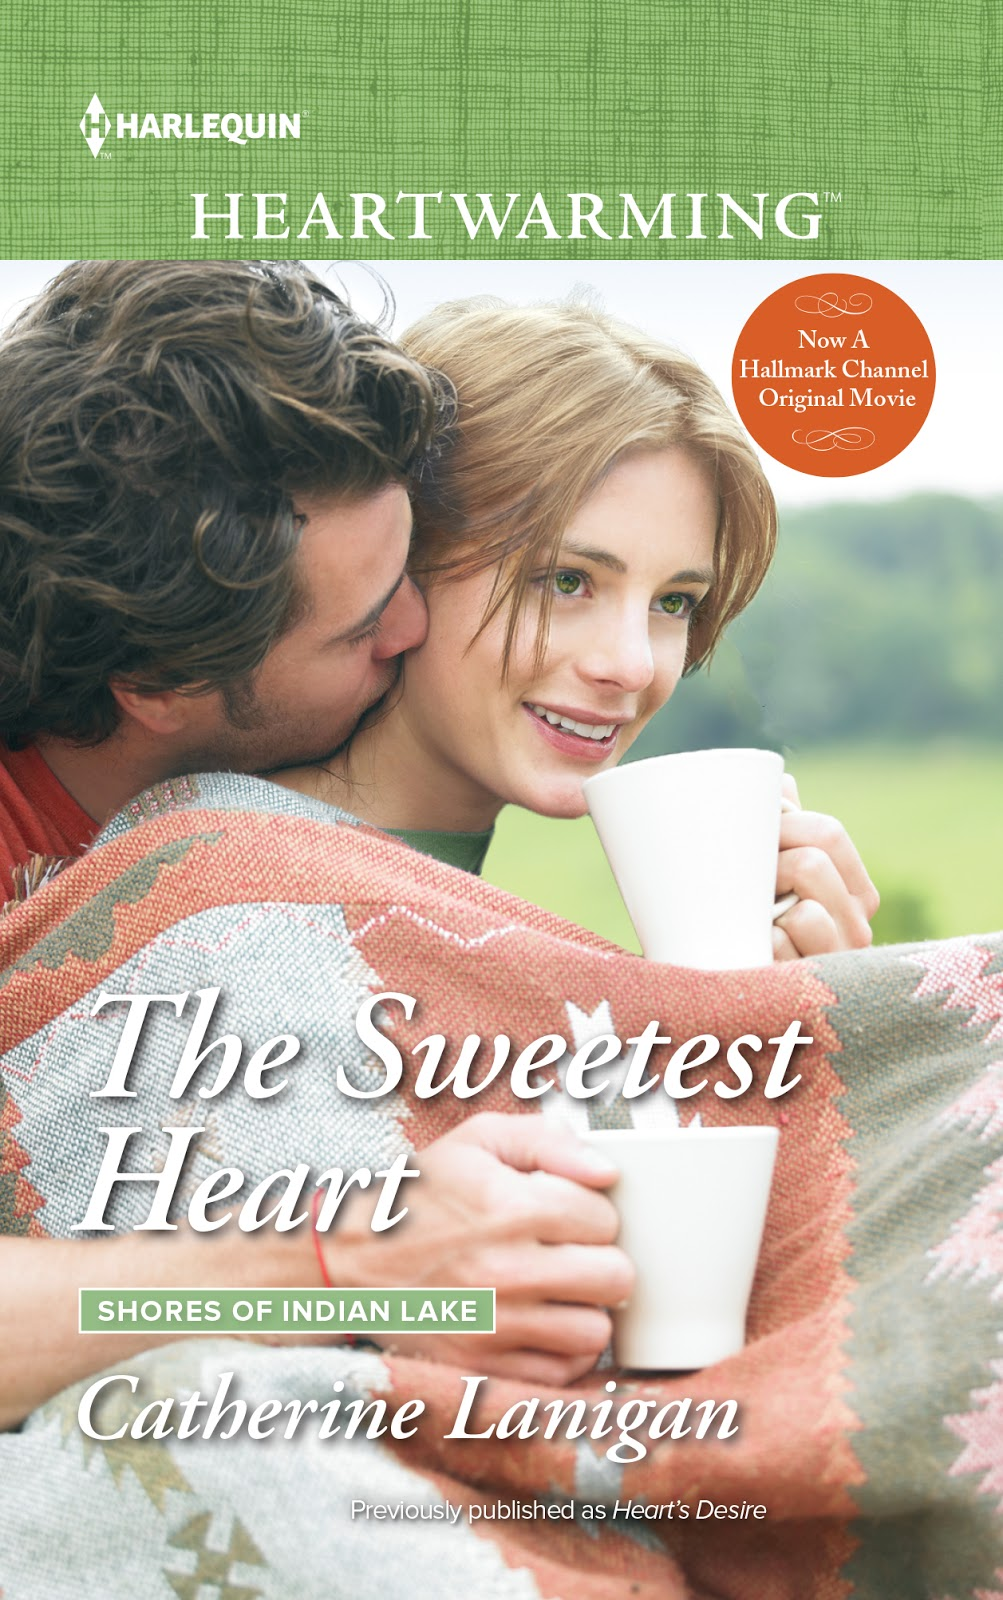 Prism book tours its the grand finale for hearts desire by hearts desire reissued as the sweetest heart shores of indian lake 2 catherine lanigan contemporary romance paperback ebook 191 pages fandeluxe Image collections